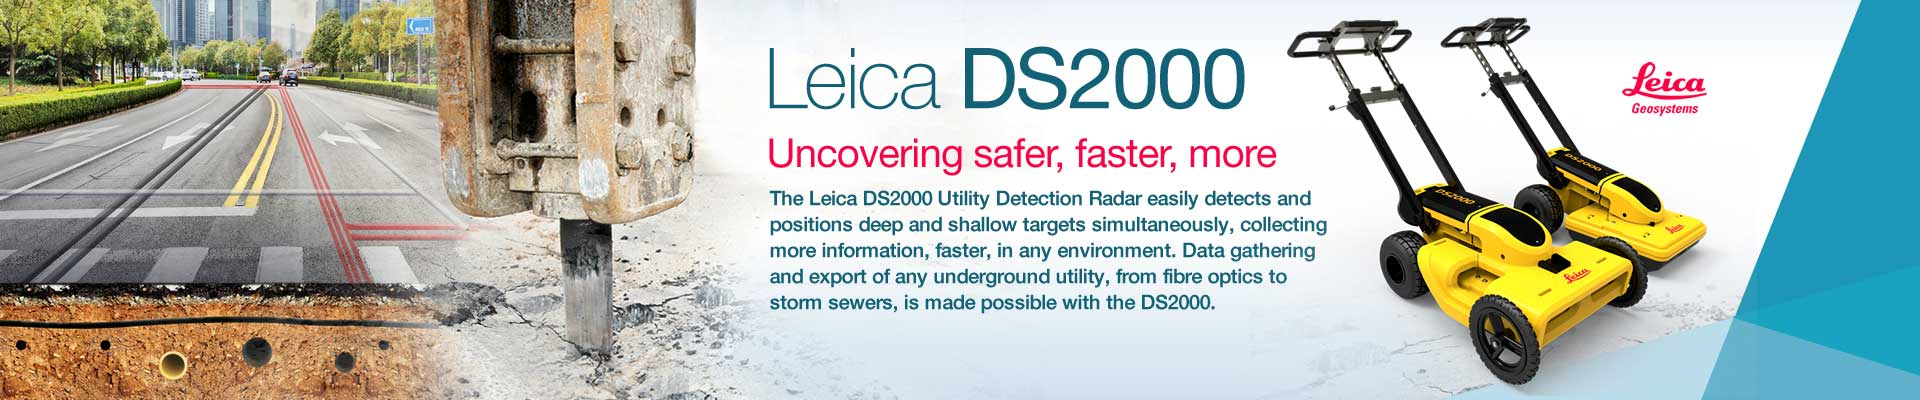 Leica DS2000 Utility Detection Radar